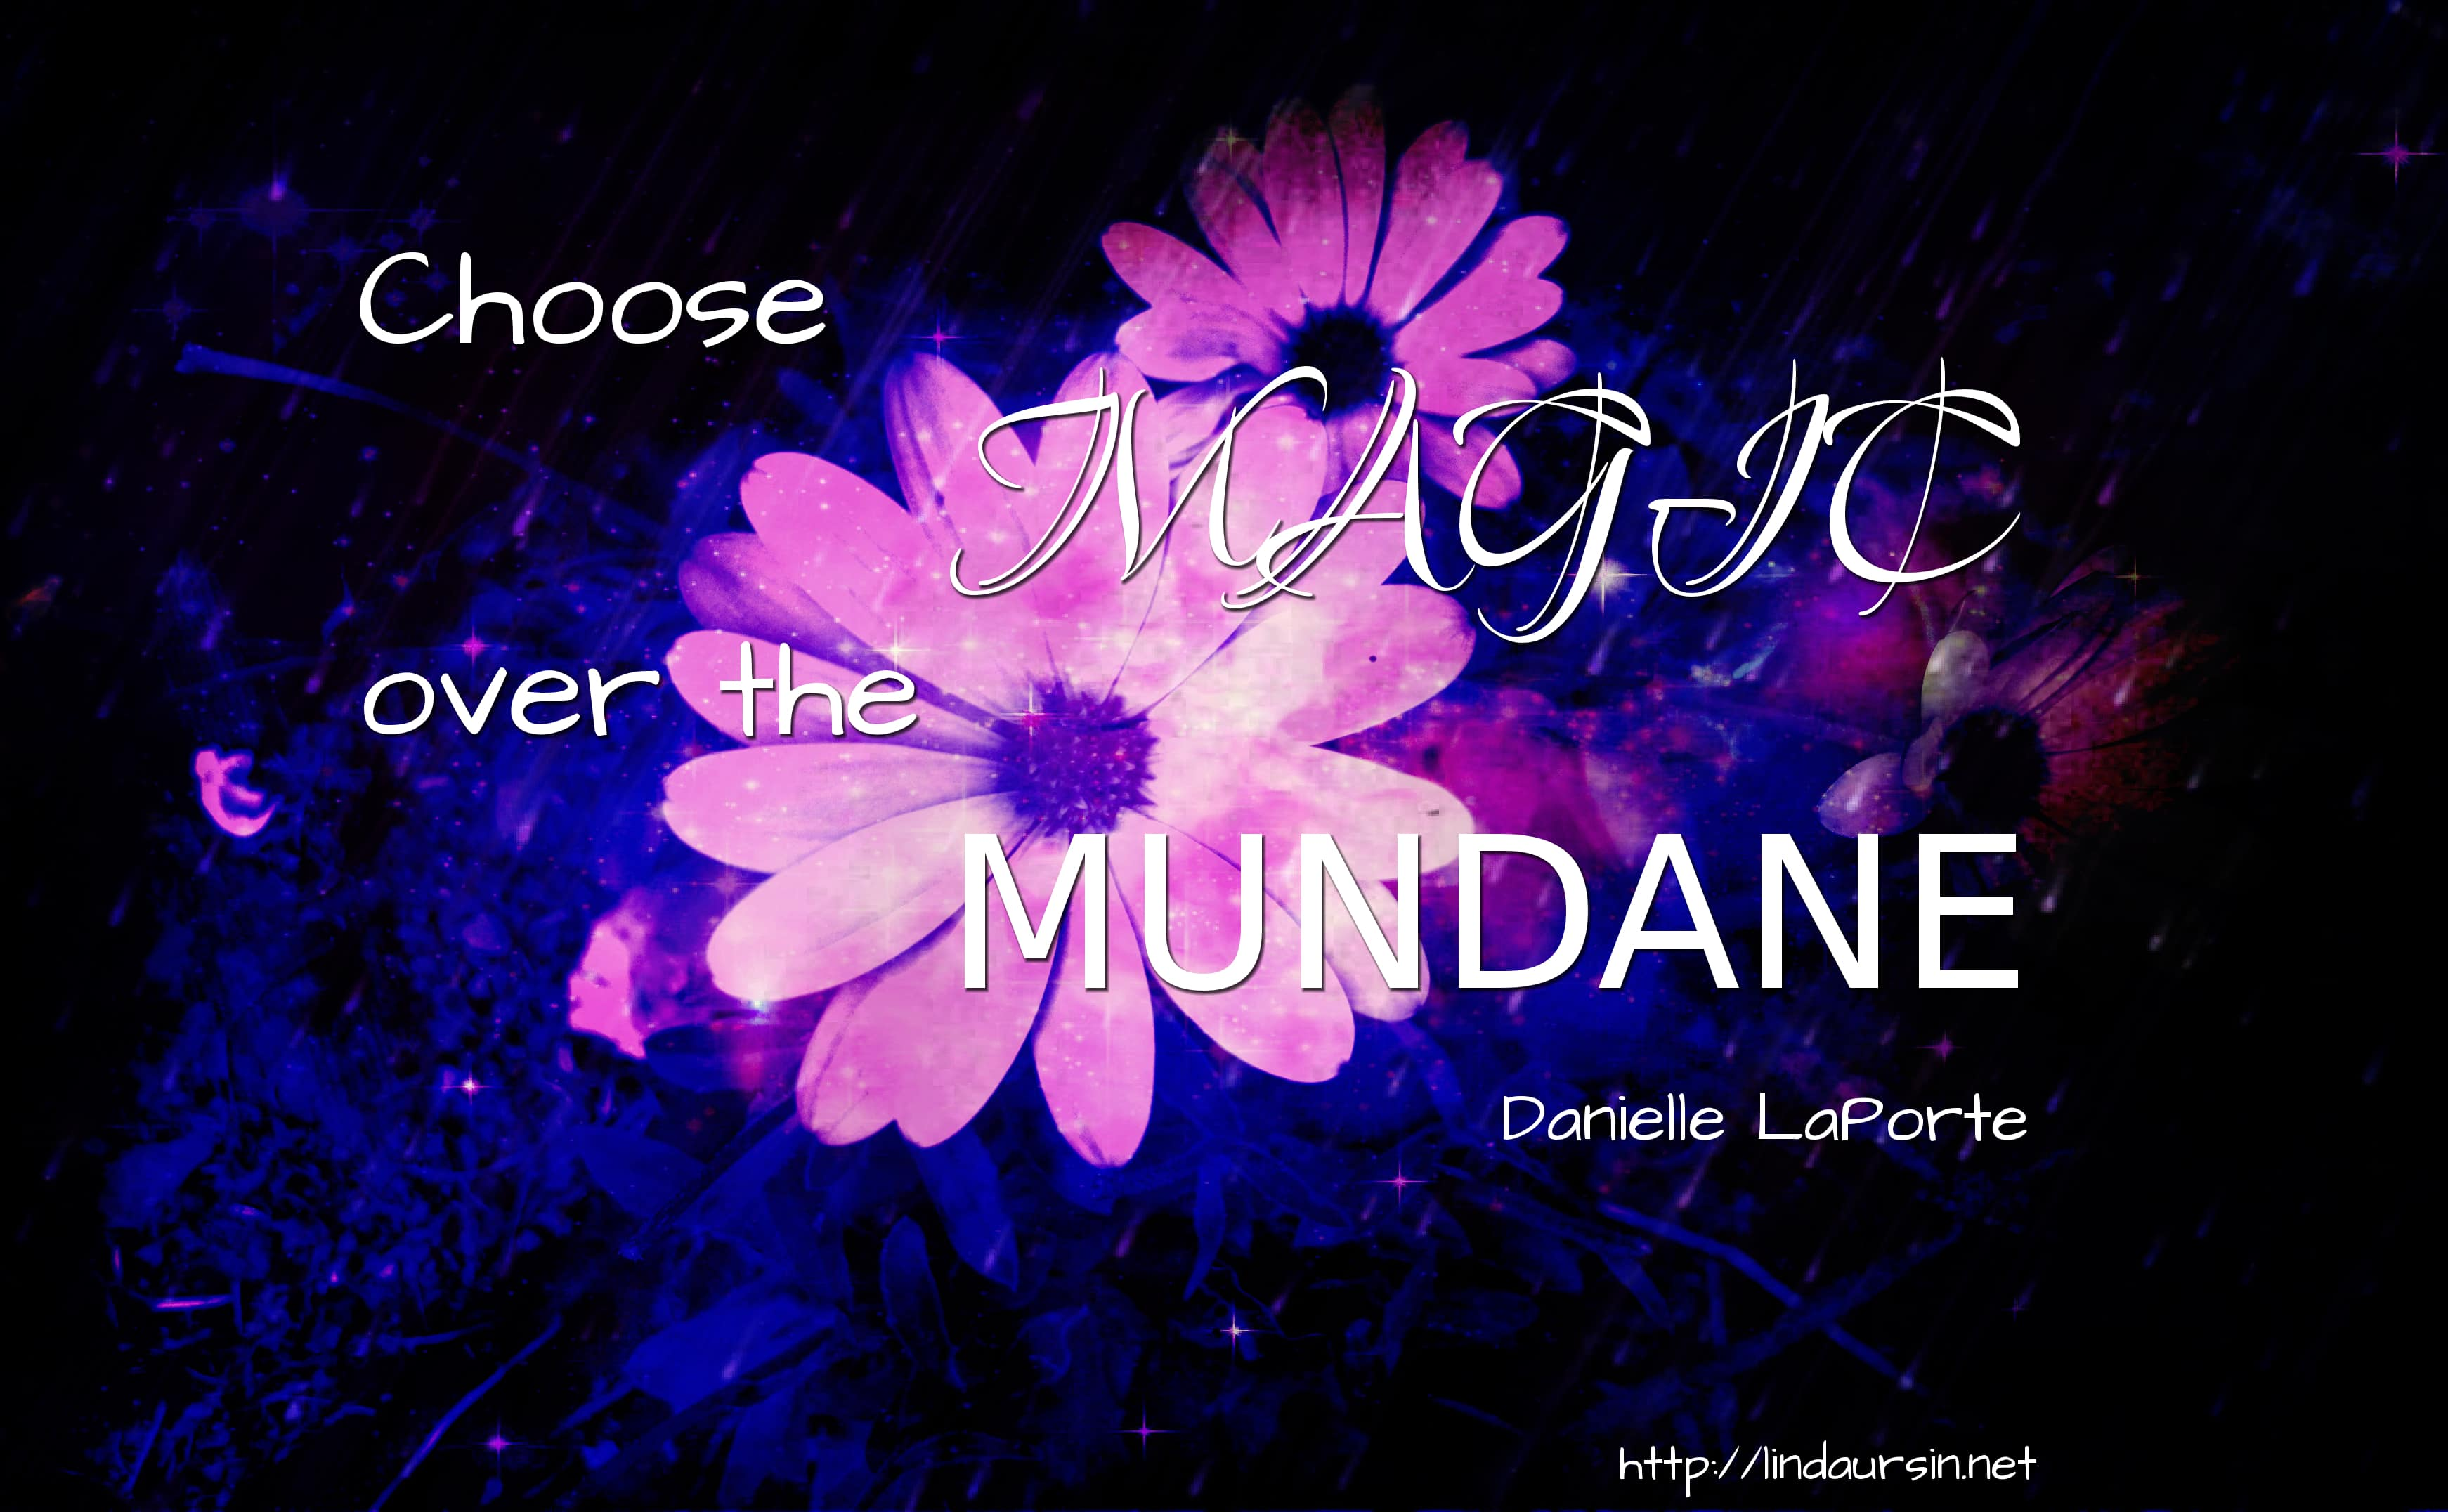 Choose magic over the mundane - Danielle LaPorte